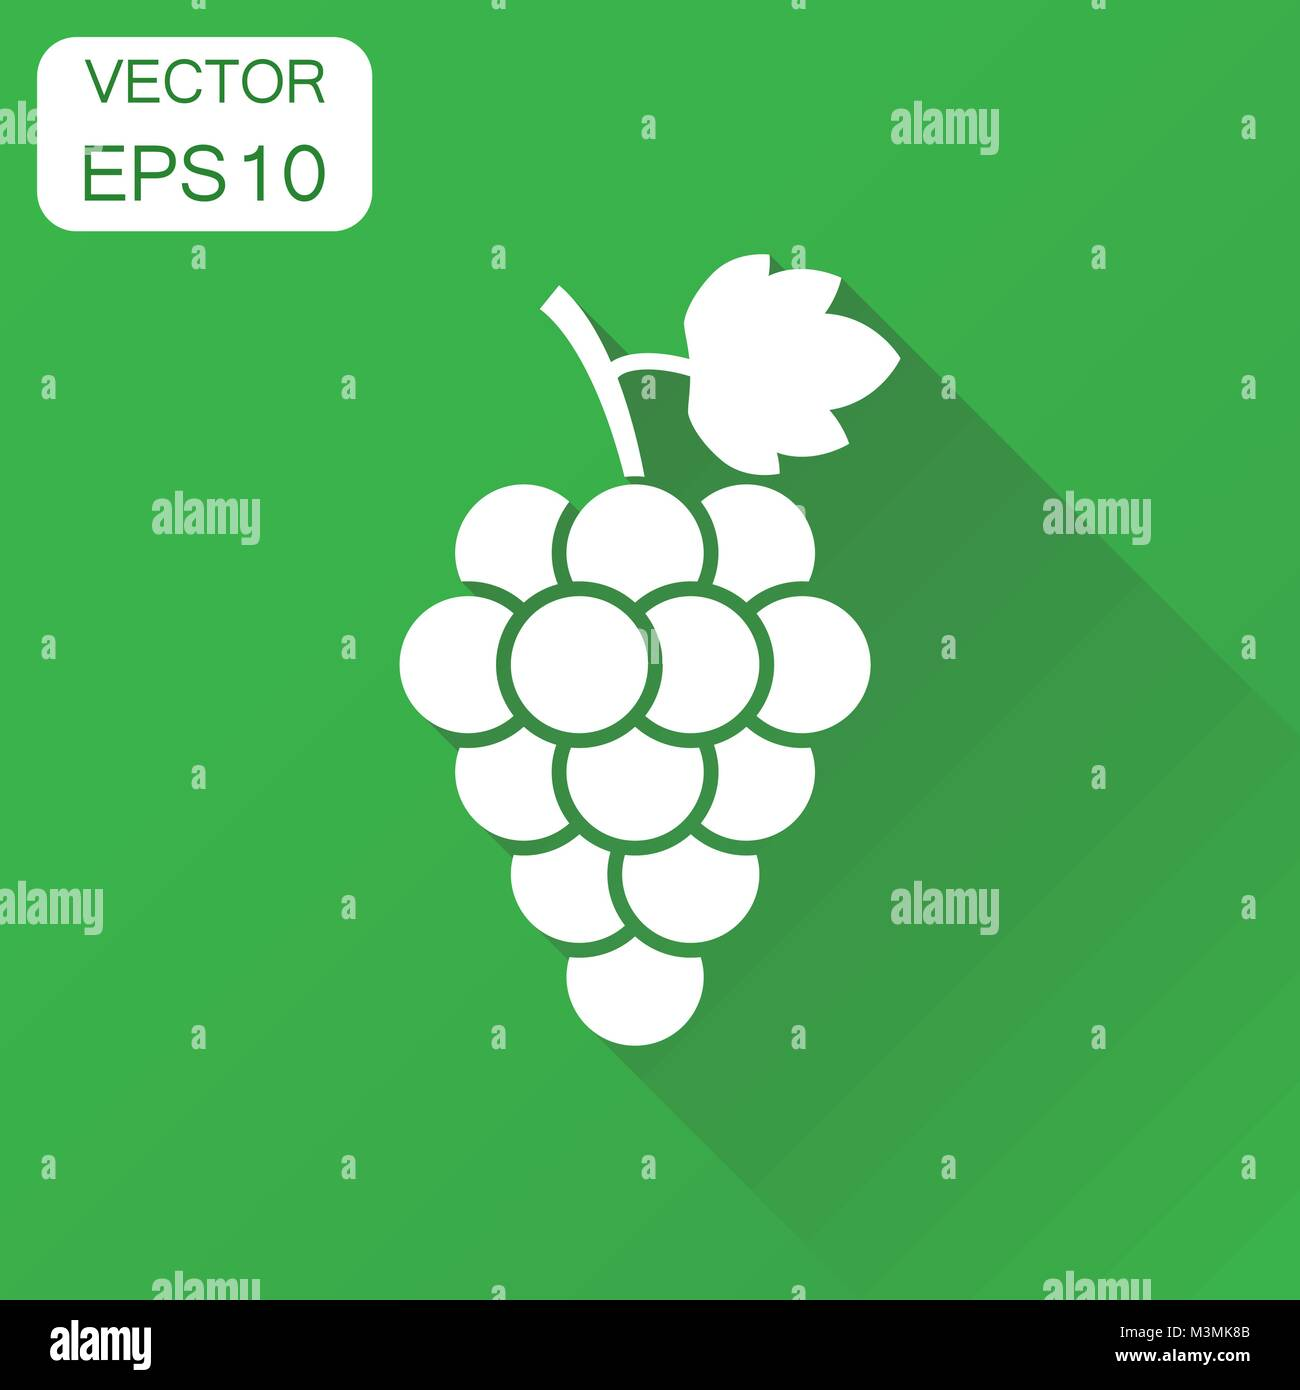 Grape fruit with leaf icon. Business concept bunch of wine grapevine pictogram. Vector illustration on green background - Stock Vector